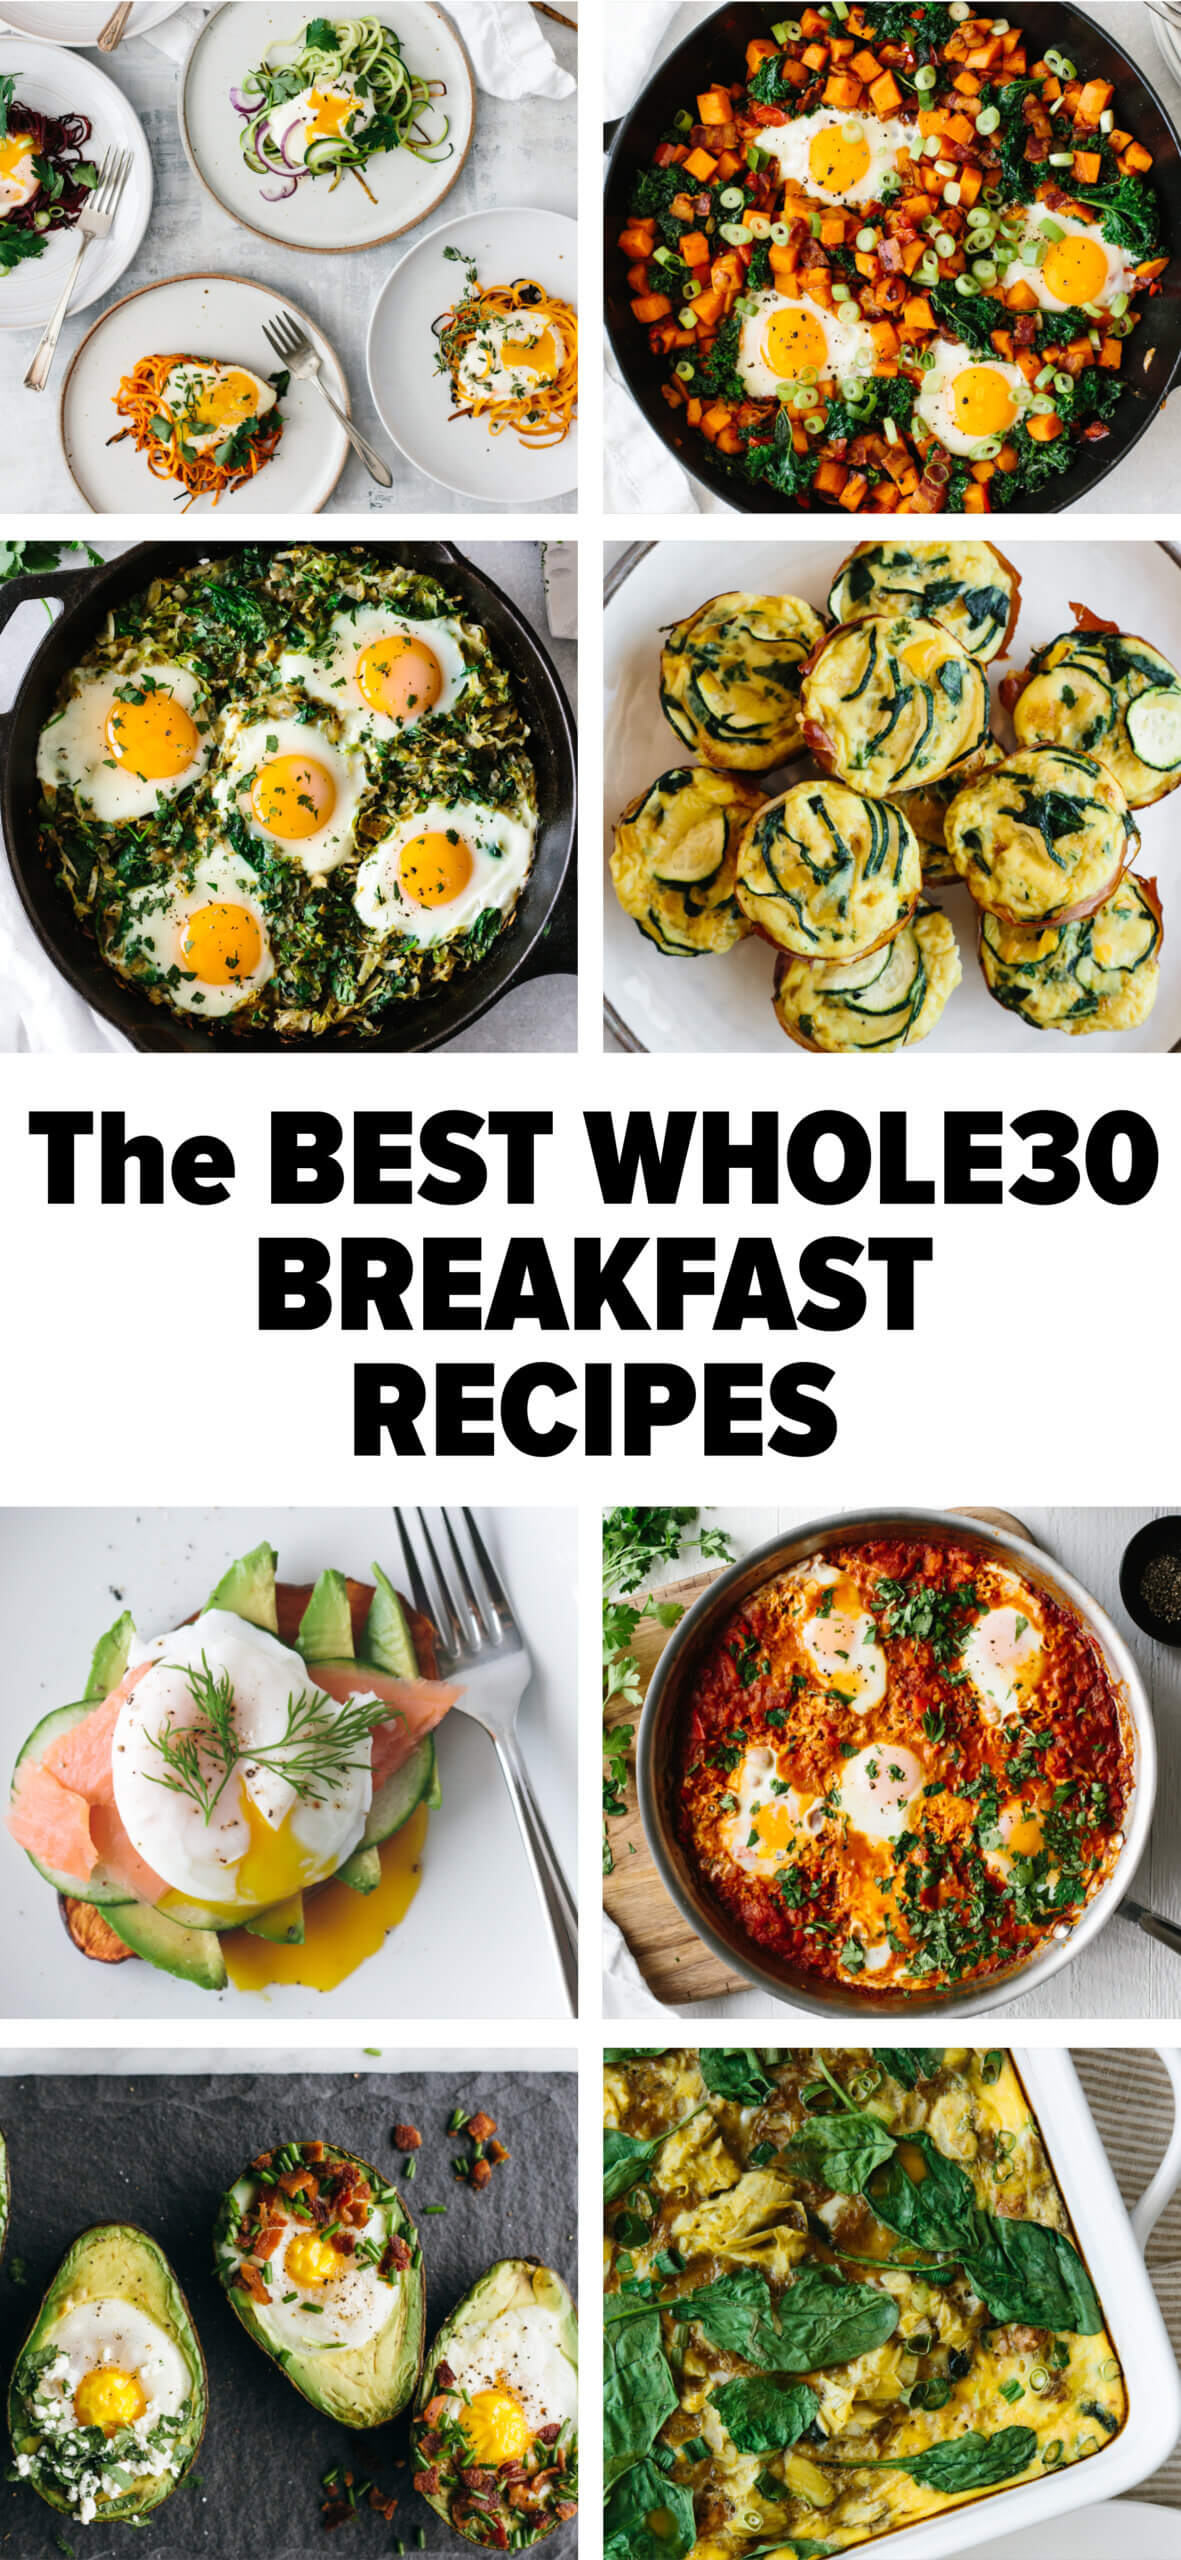 20 Healthy Whole30 Breakfast Recipes Downshiftology